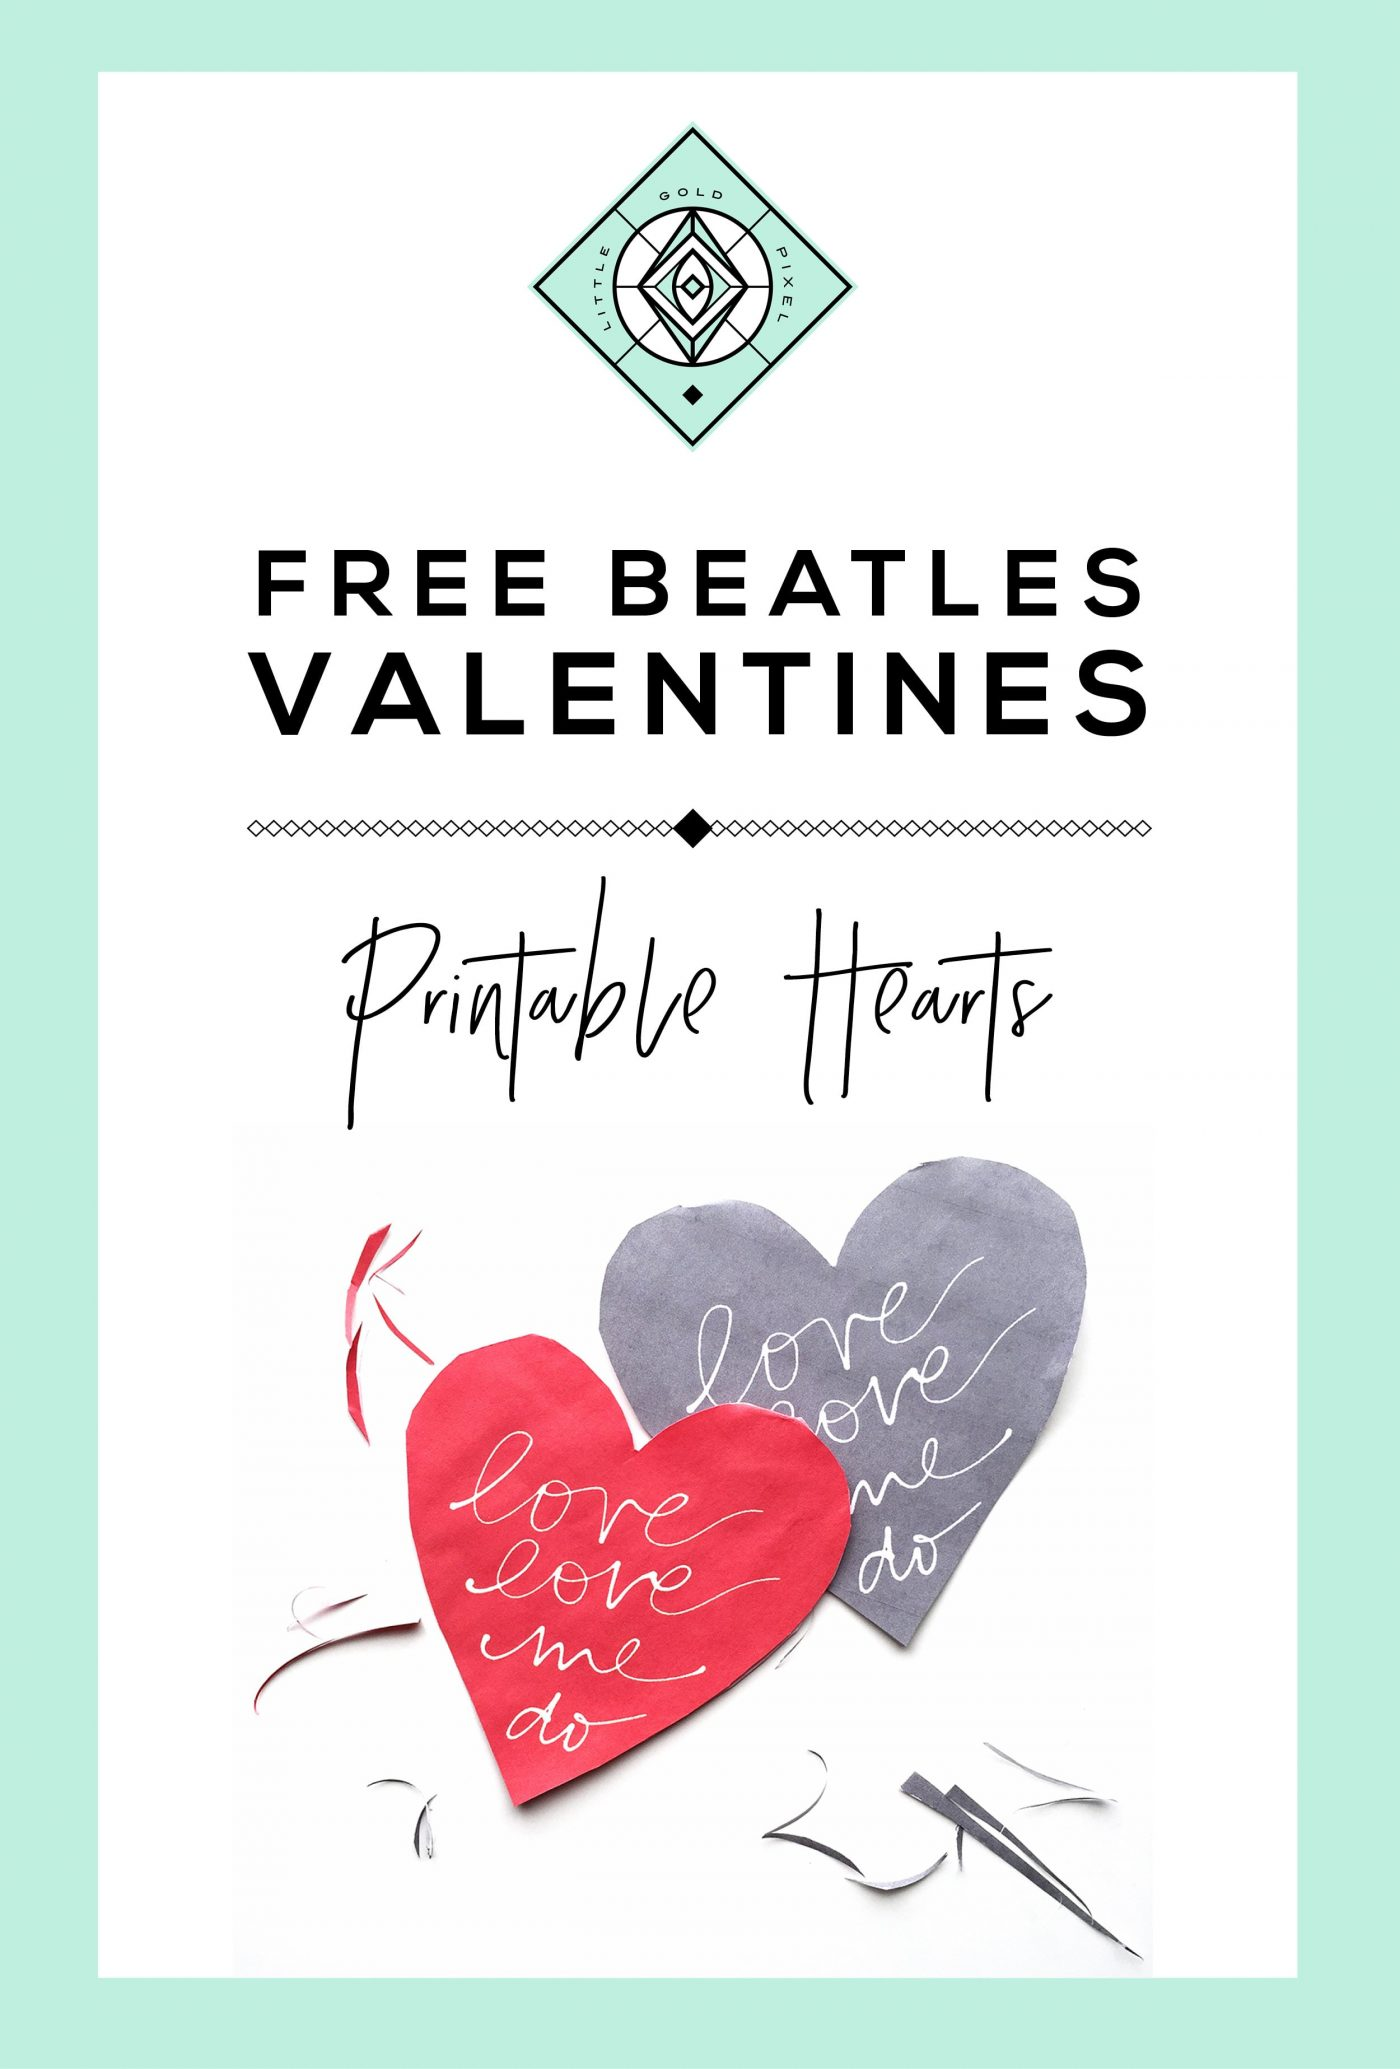 Free Beatles Heart Valentine Printable • Little Gold Pixel